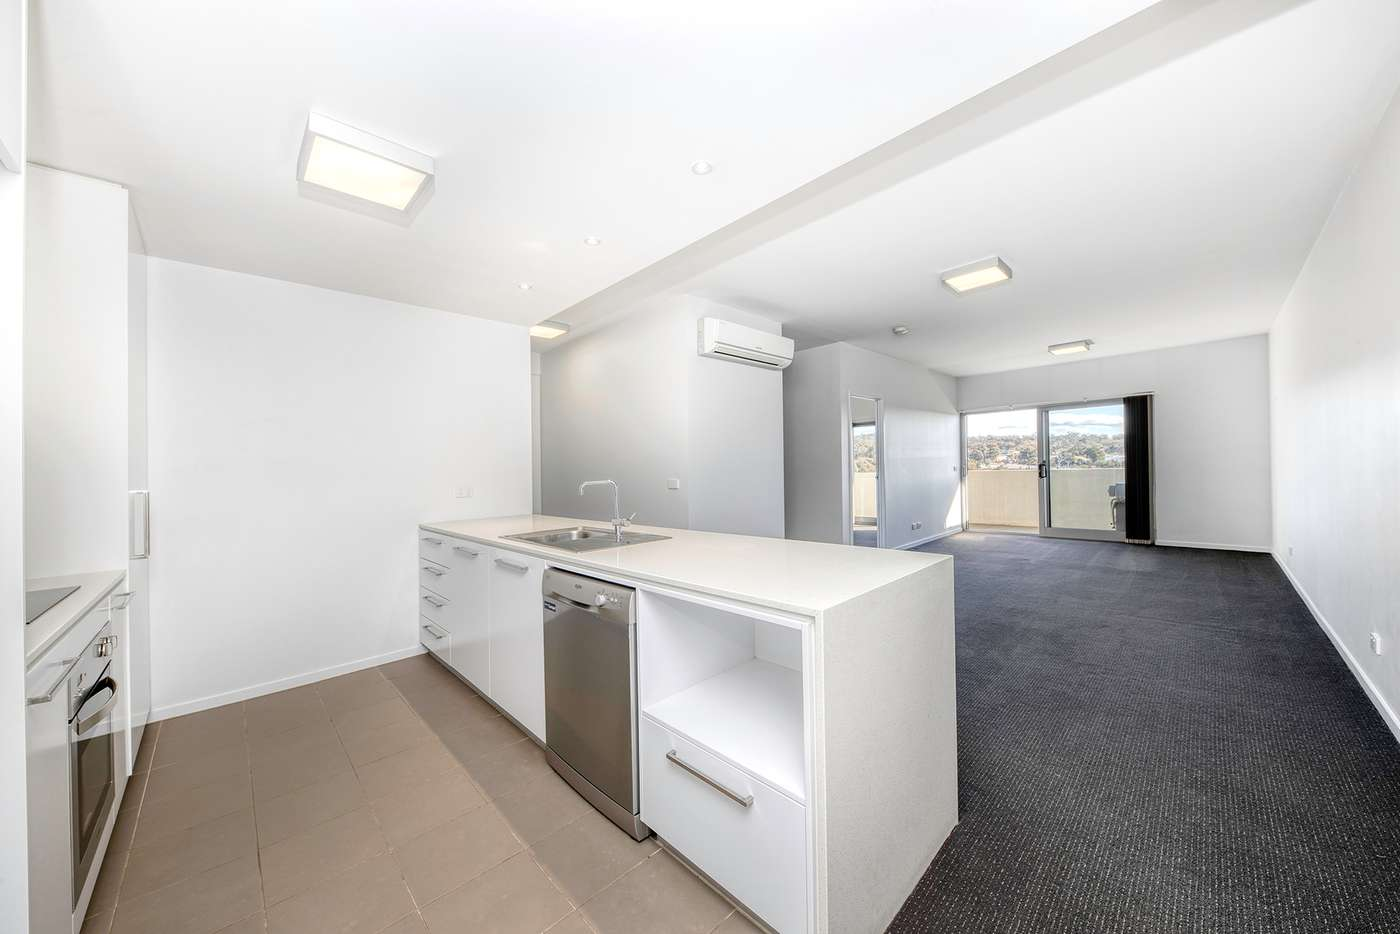 Sixth view of Homely apartment listing, 508/9 Watkin Street, Bruce ACT 2617